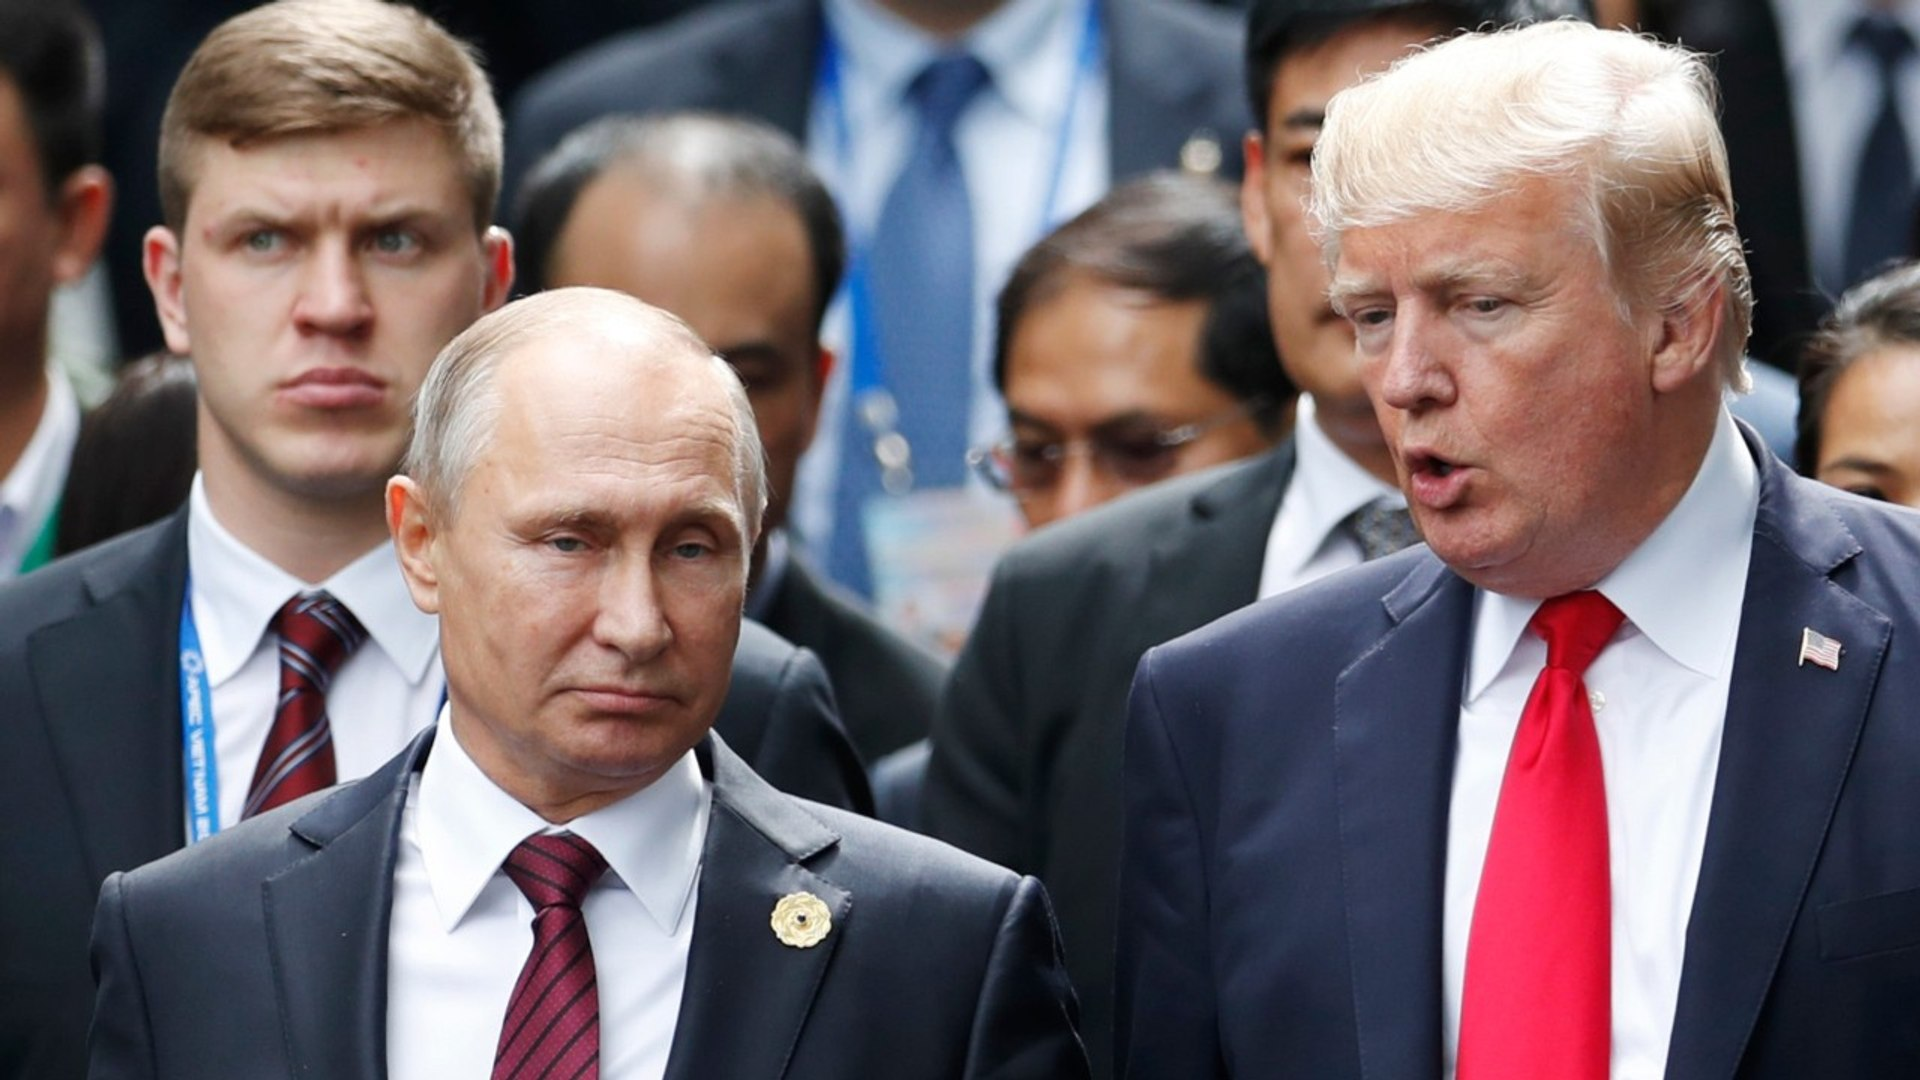 Donald Trump Meets With Vladimir Putin And Says It Is A 'Good Start'